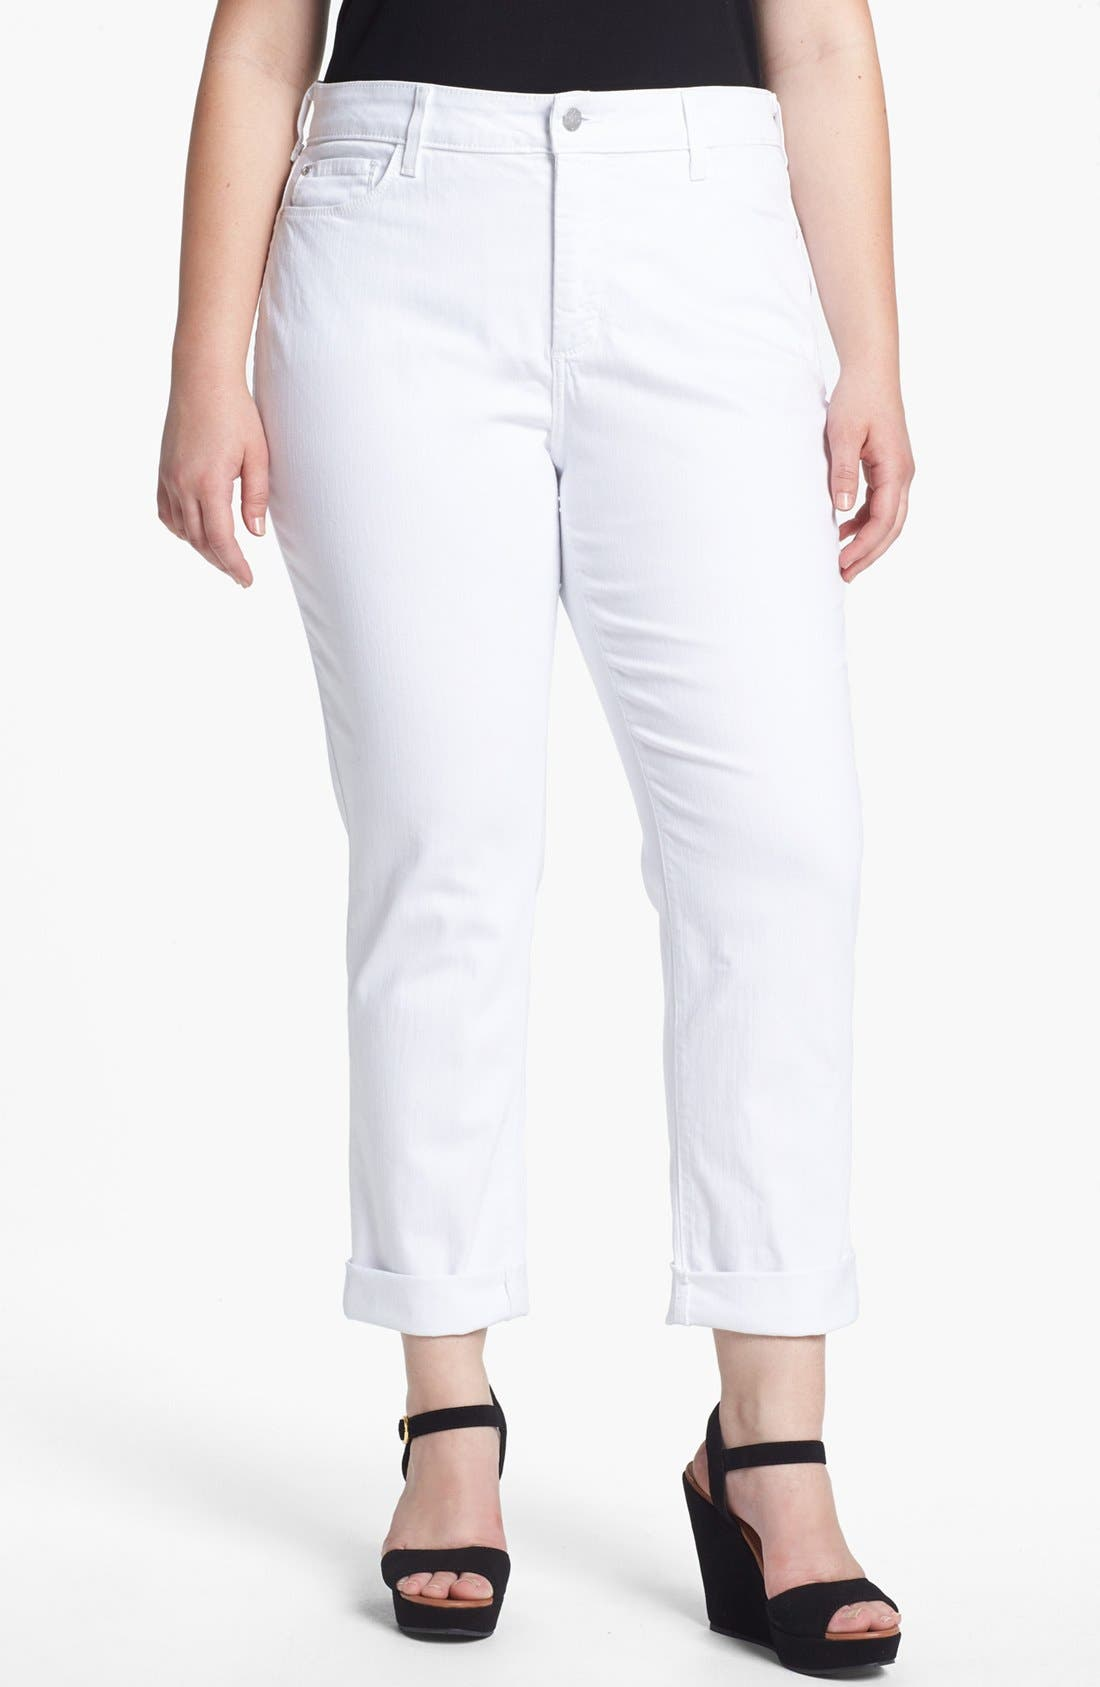 Alternate Image 1 Selected - NYDJ 'Tanya' Cuff Boyfriend Jeans (Plus Size)